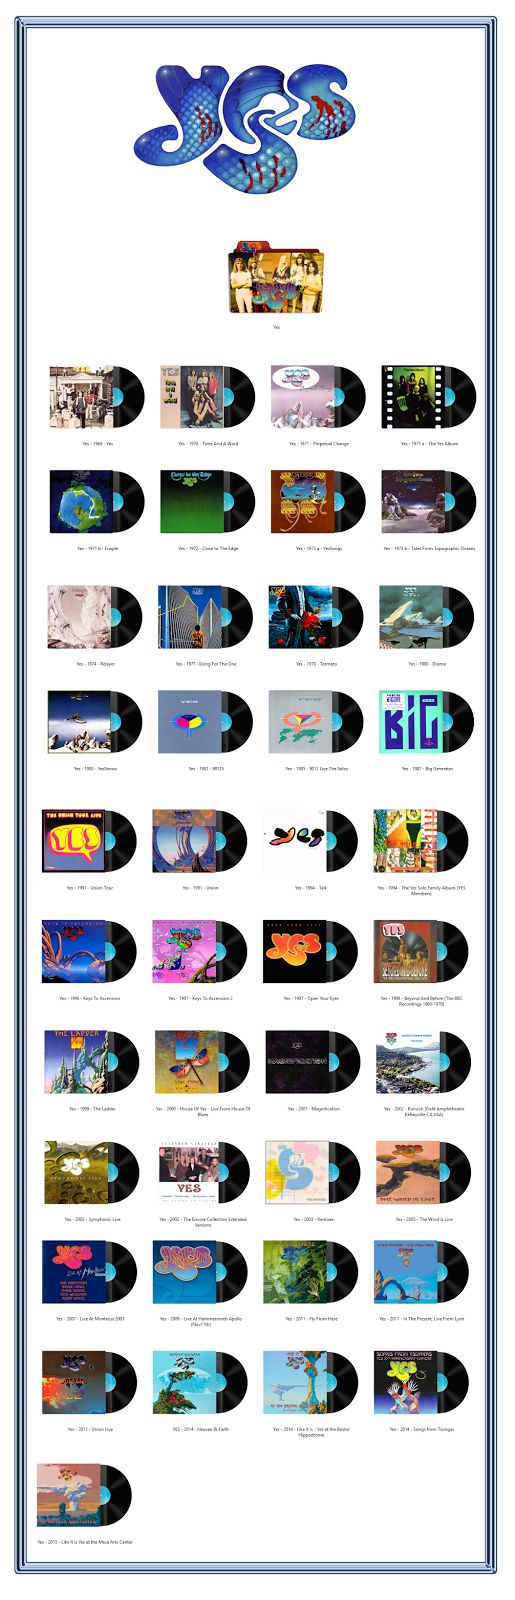 Album Art Icons: Yes Discography Icons (ICO & PNG)